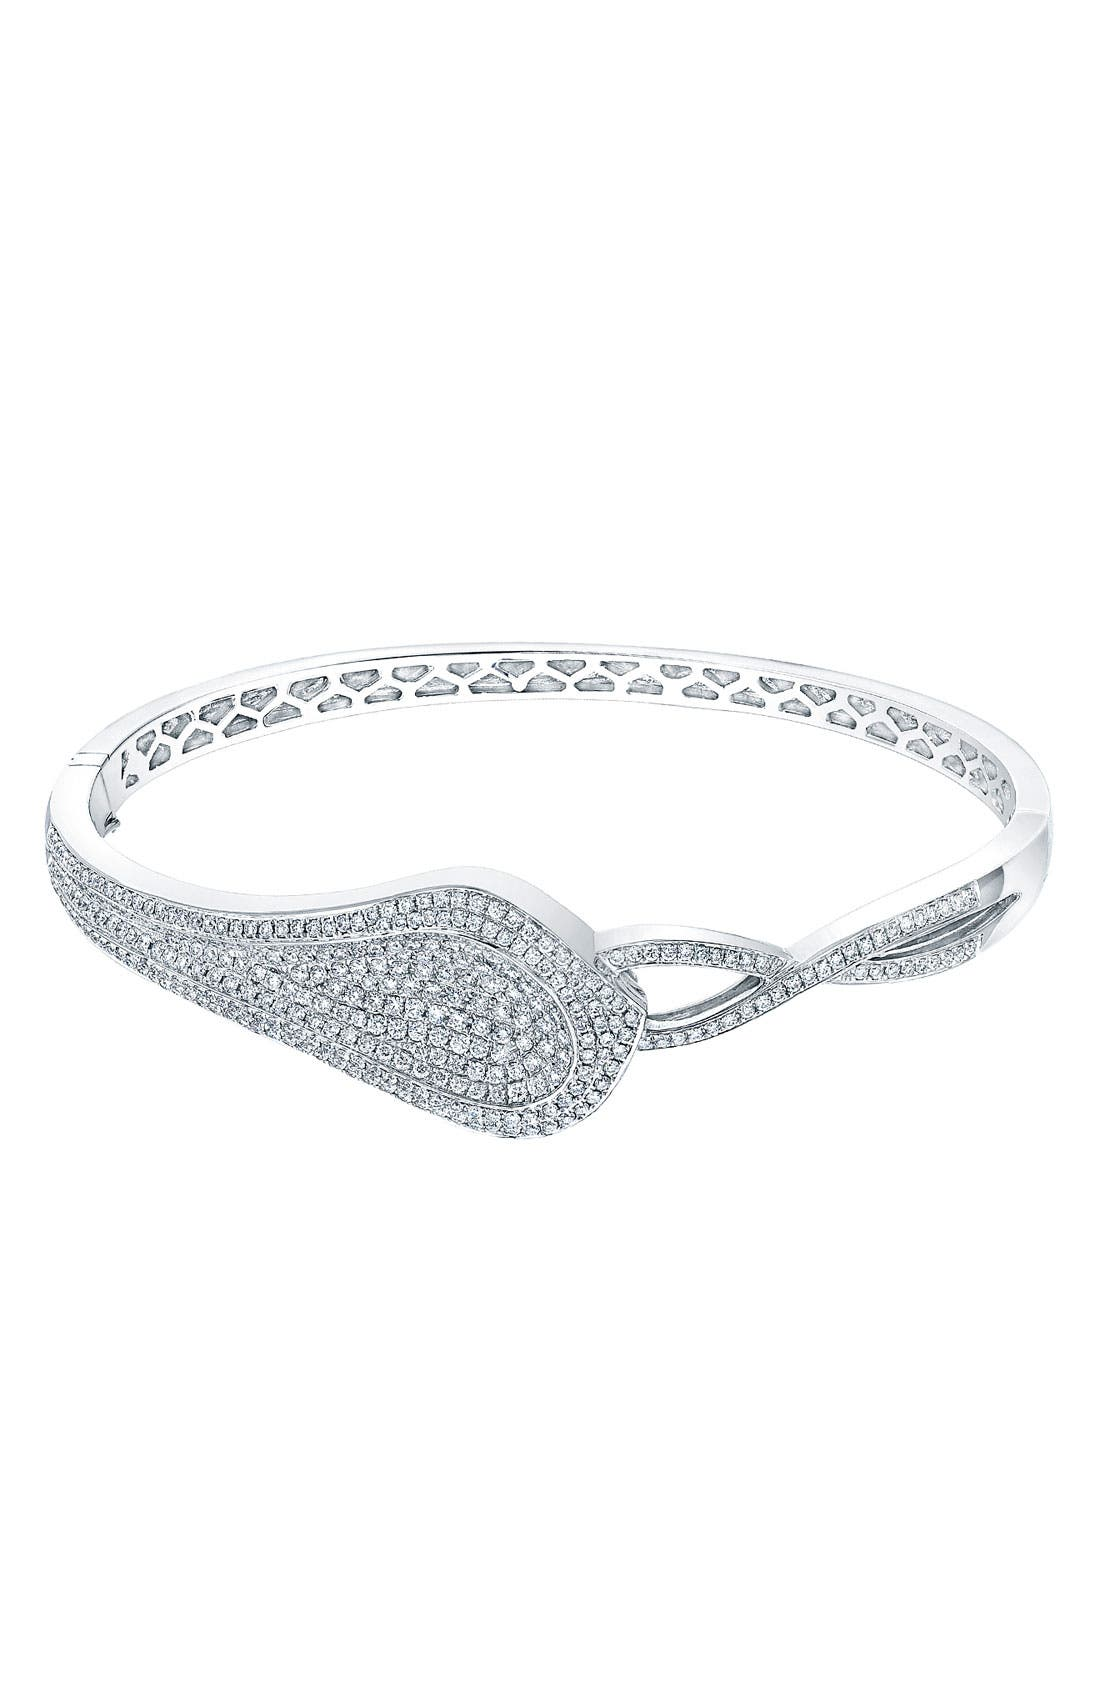 Main Image - Bony Levy 'Paisley' Diamond Bangle (Nordstrom Exclusive)